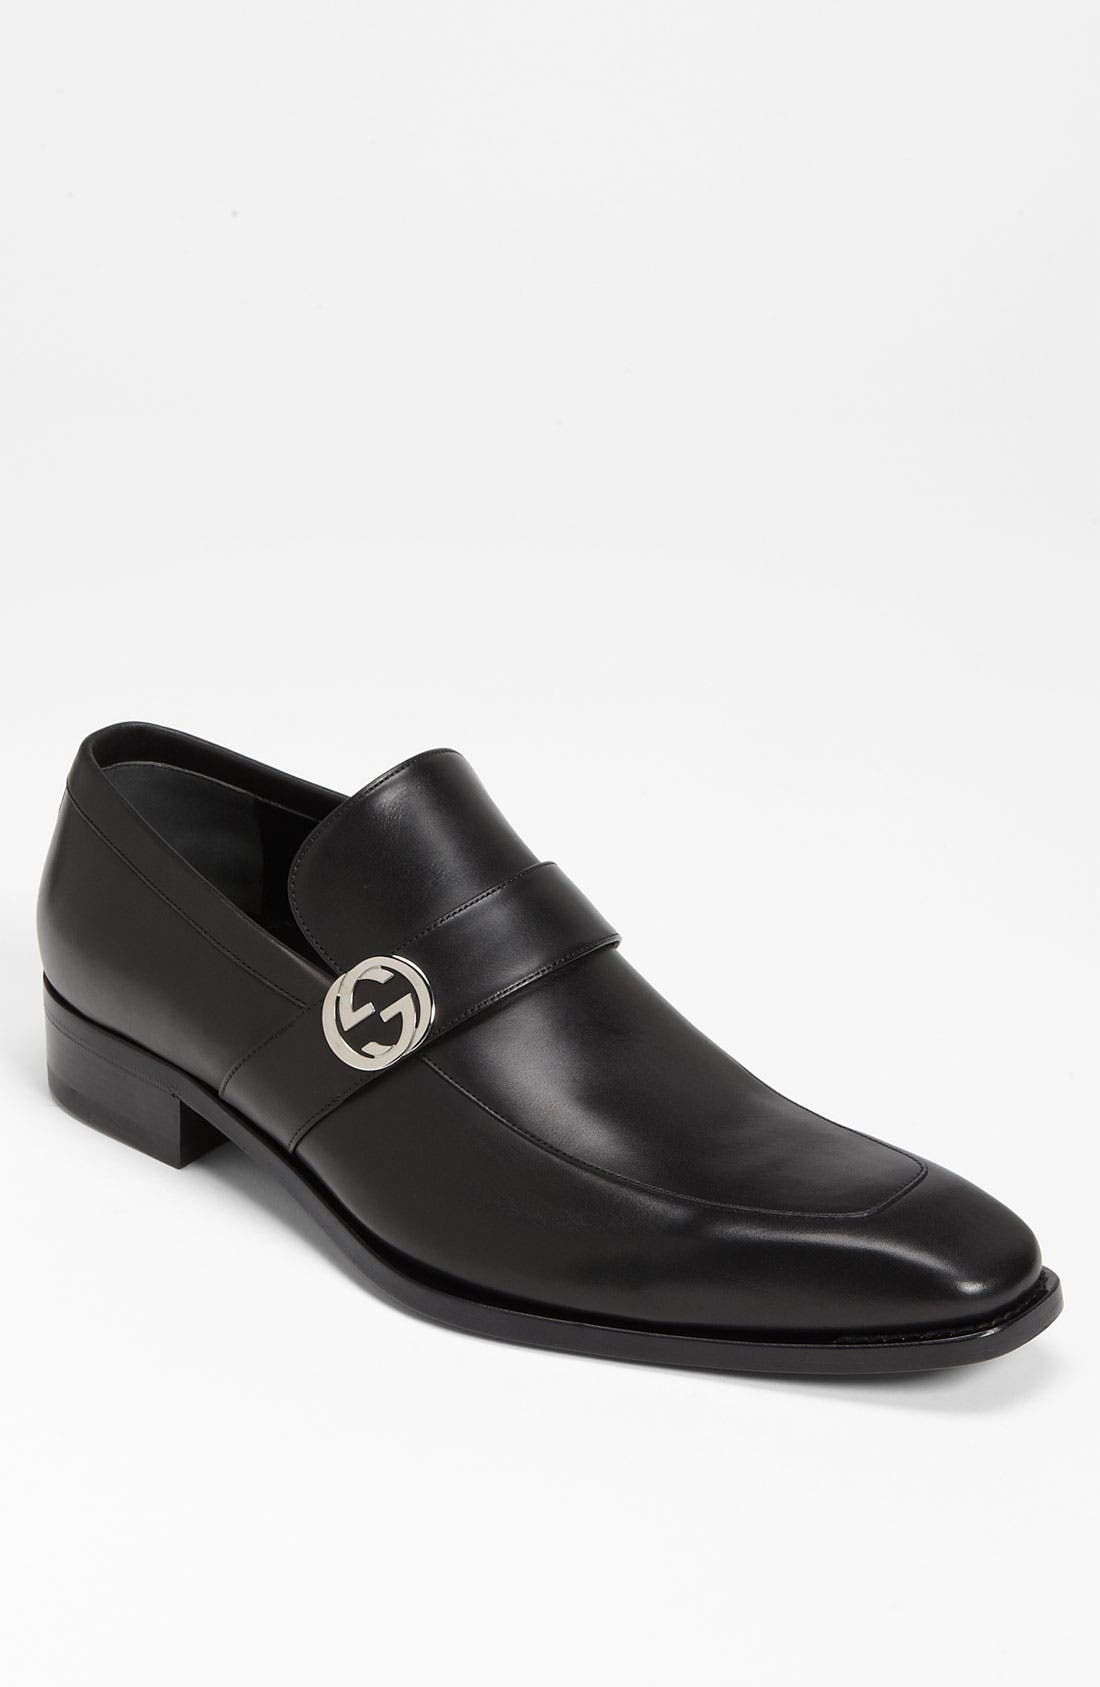 GUCCI 'Double G' Loafer, Main, color, 005